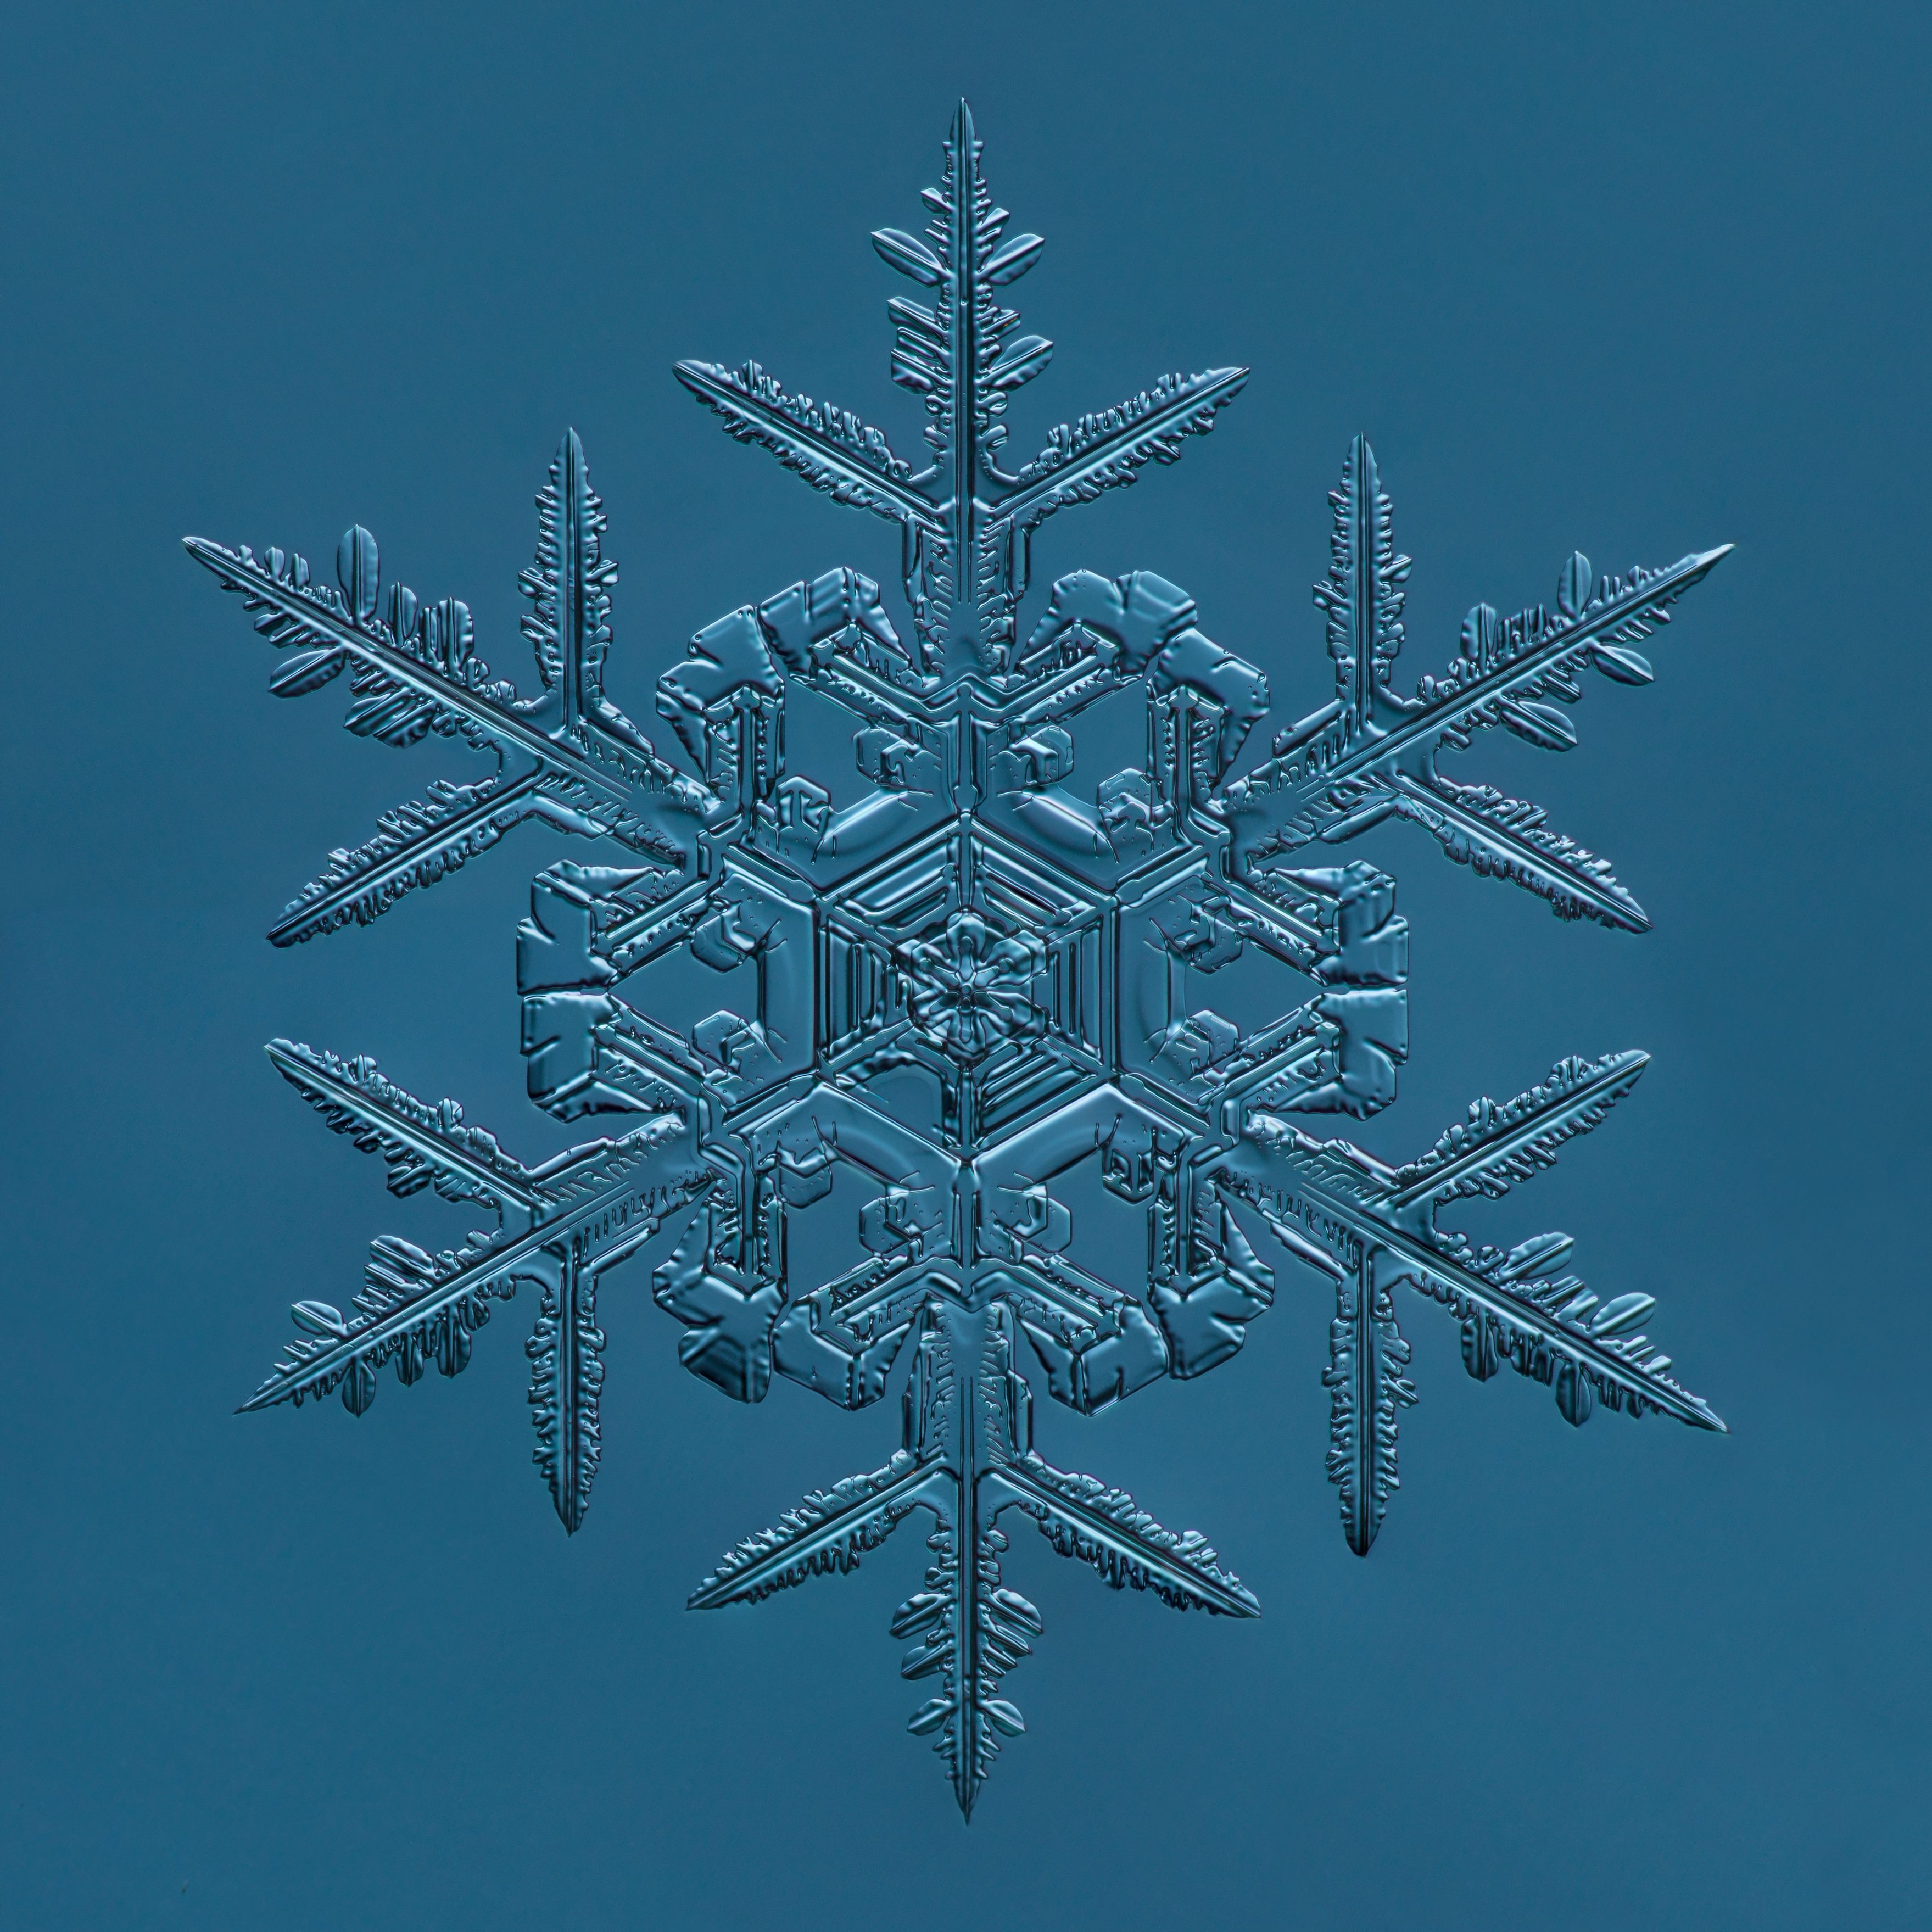 """Douglas Levere's photographs of snowflakes under a microscope were on view in CEPA Gallery's exhibition """"Fire and Ice.""""  Title: Snowflake, Fernlike Stellar Dendrite, 2015.02.02.008"""